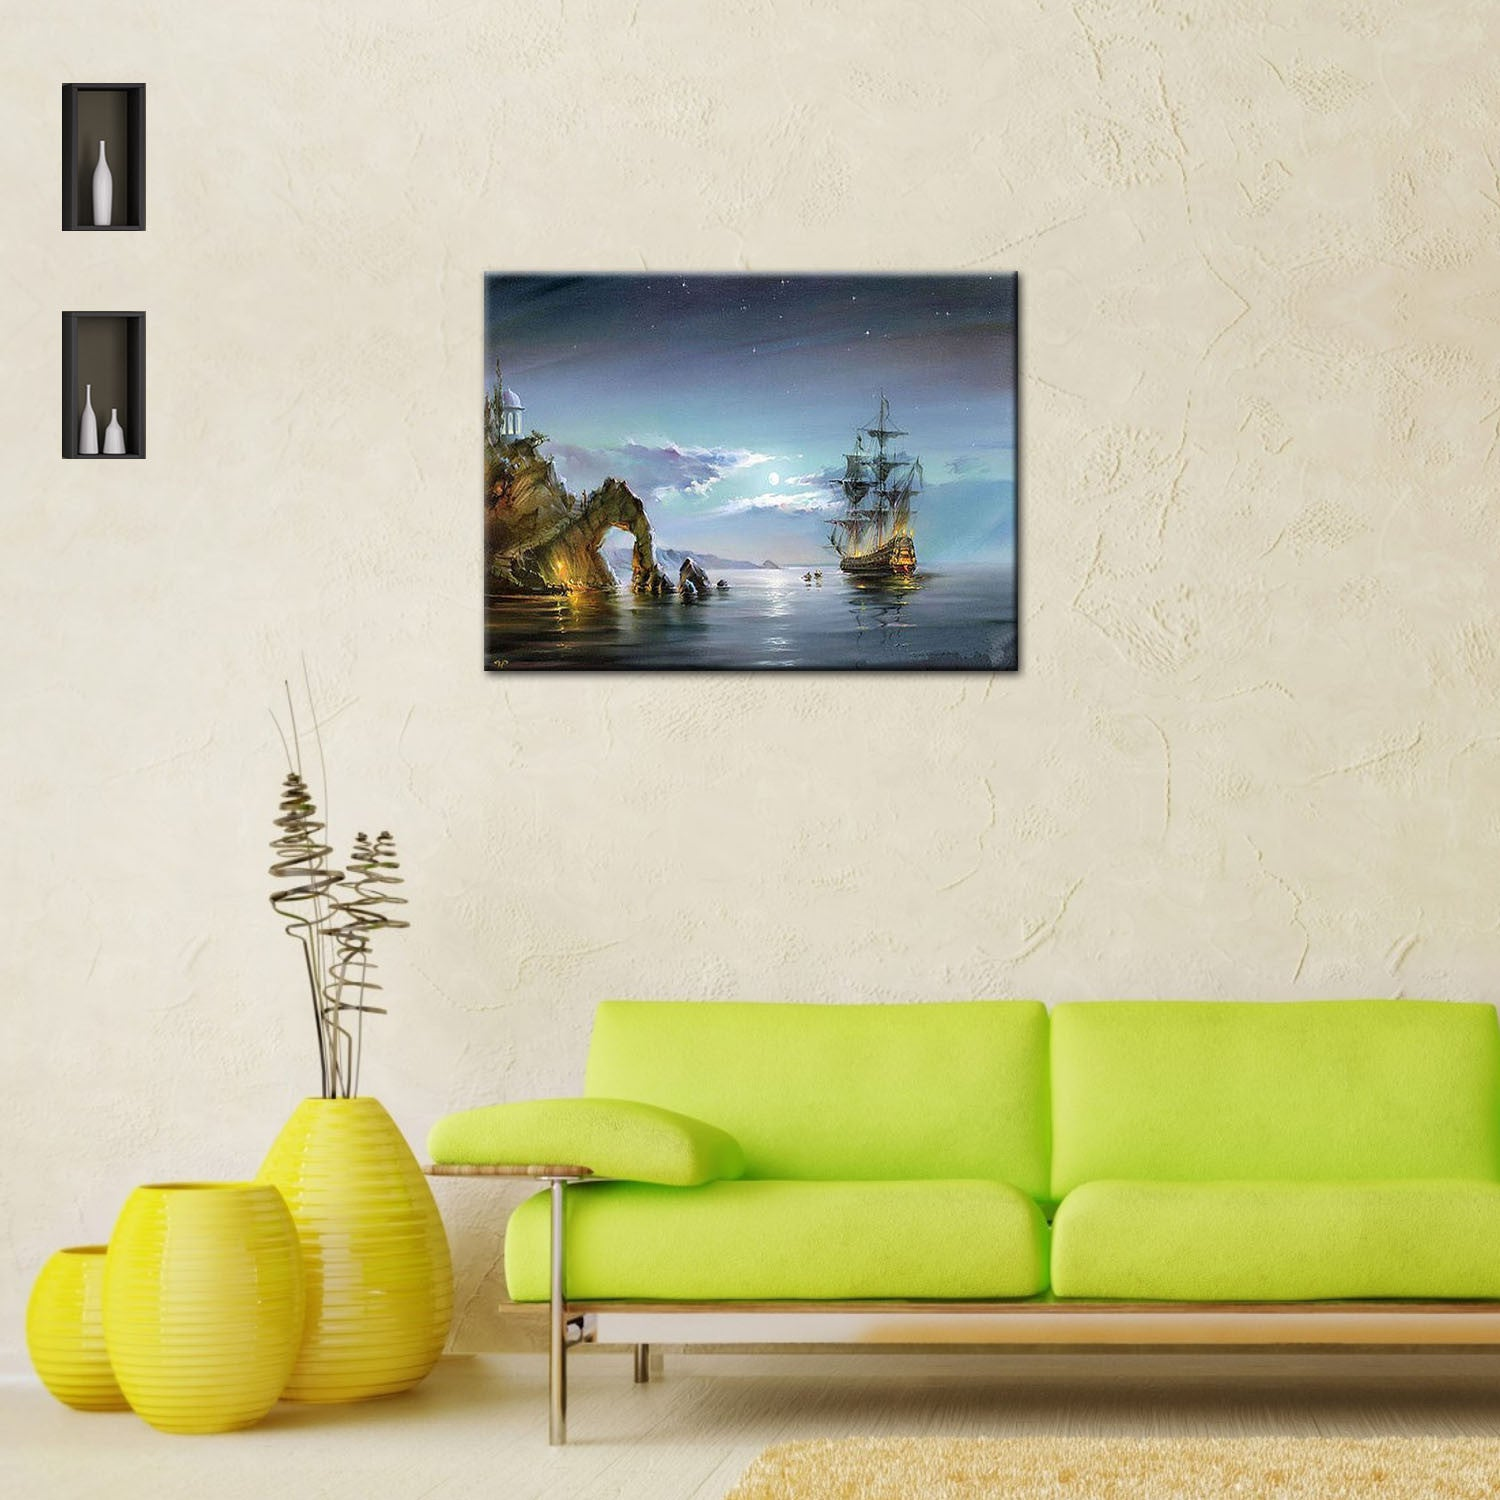 Hogar DIY Painting Home Art  Pictures For Living Room